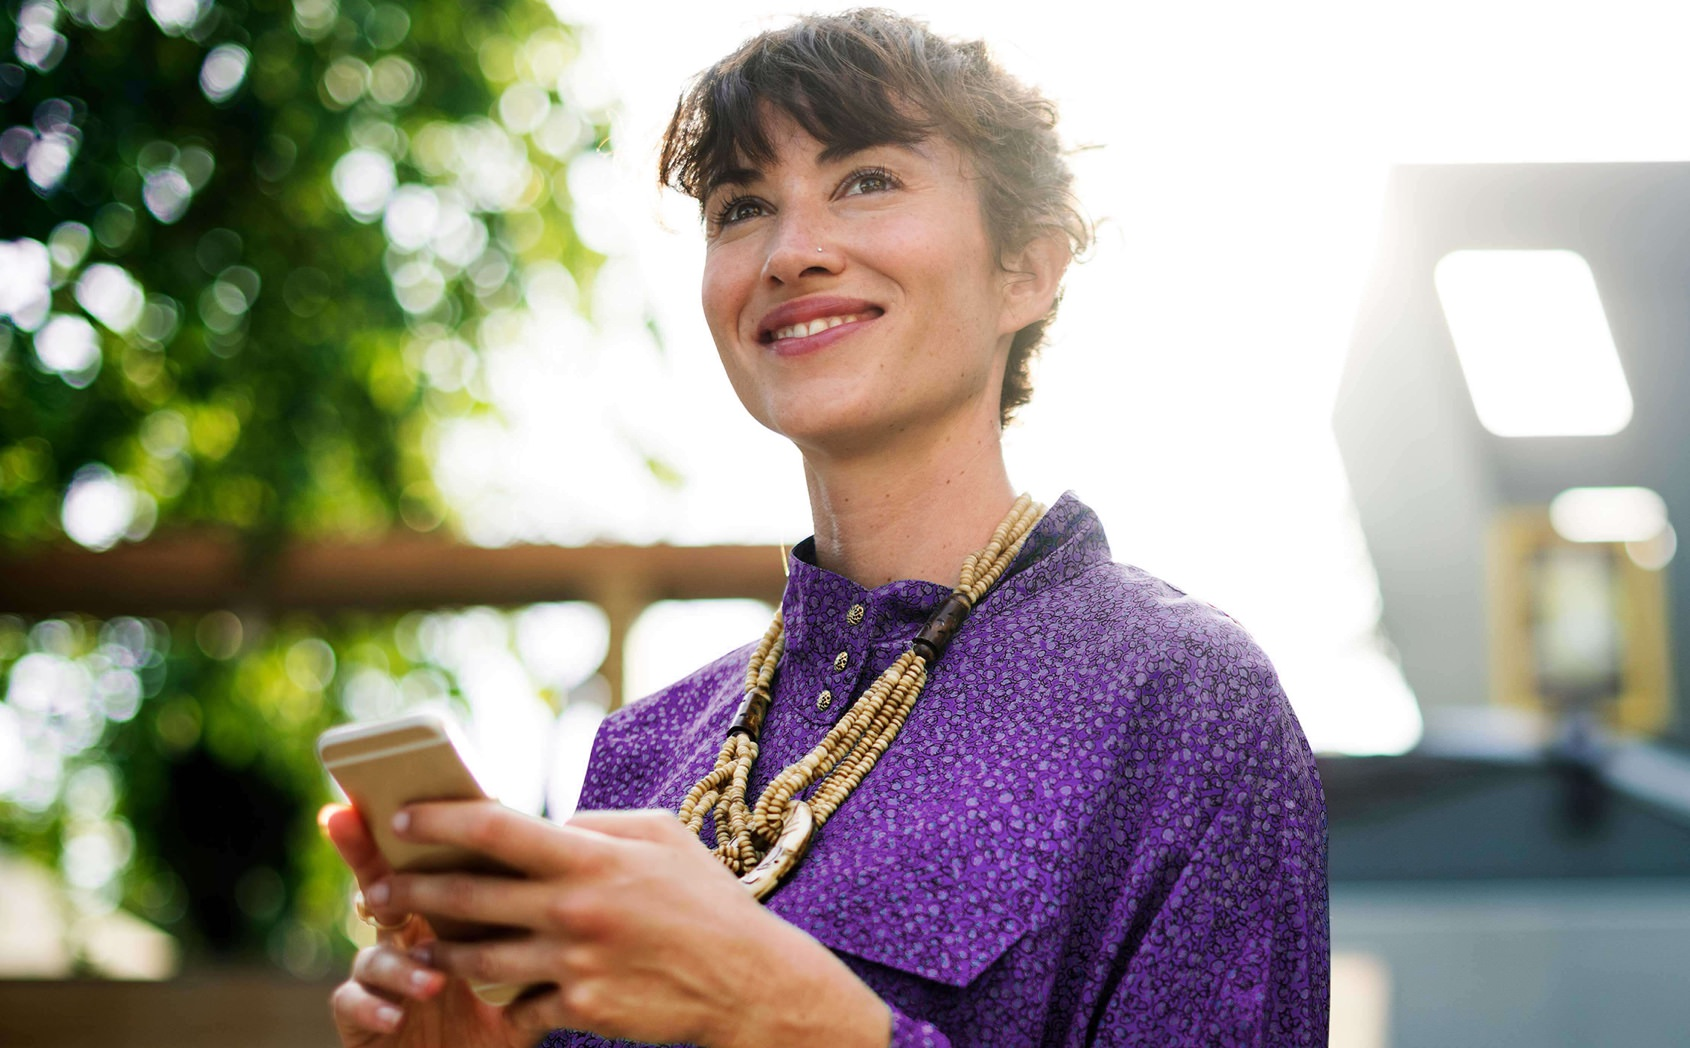 Smiling young woman holding smart phone and looking up